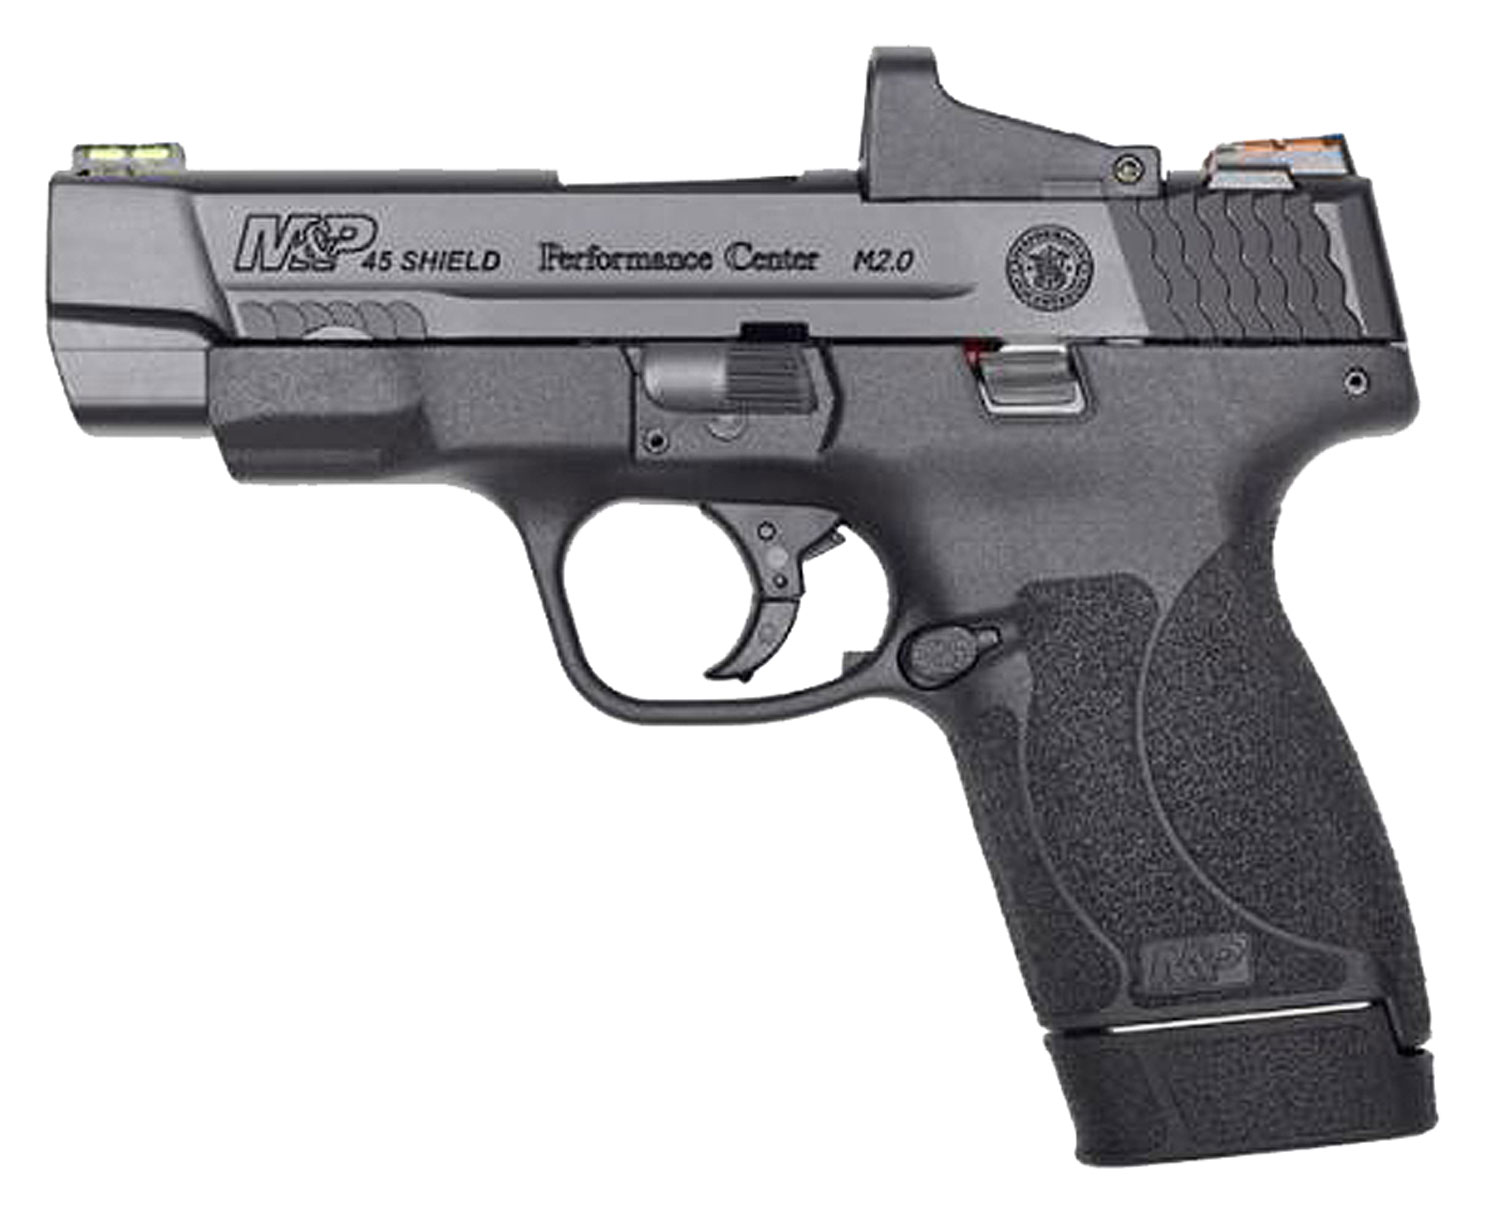 Smith & Wesson 11865 Performance Center 45 Shield M2.0 45 ACP Double 4